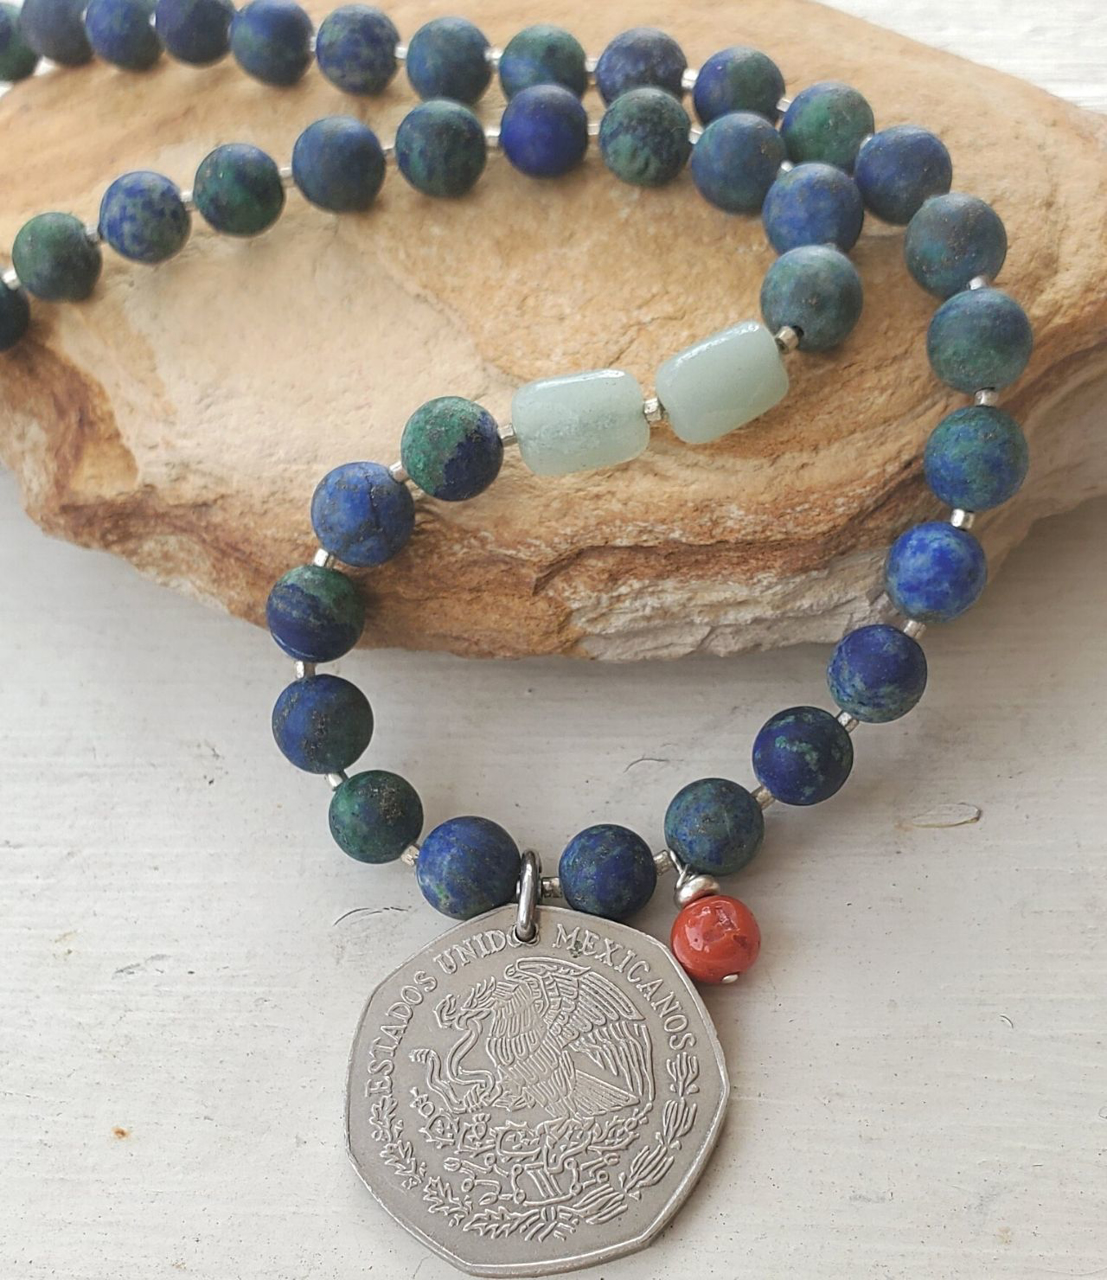 Old silver coin vibrant gemstone necklace on stone